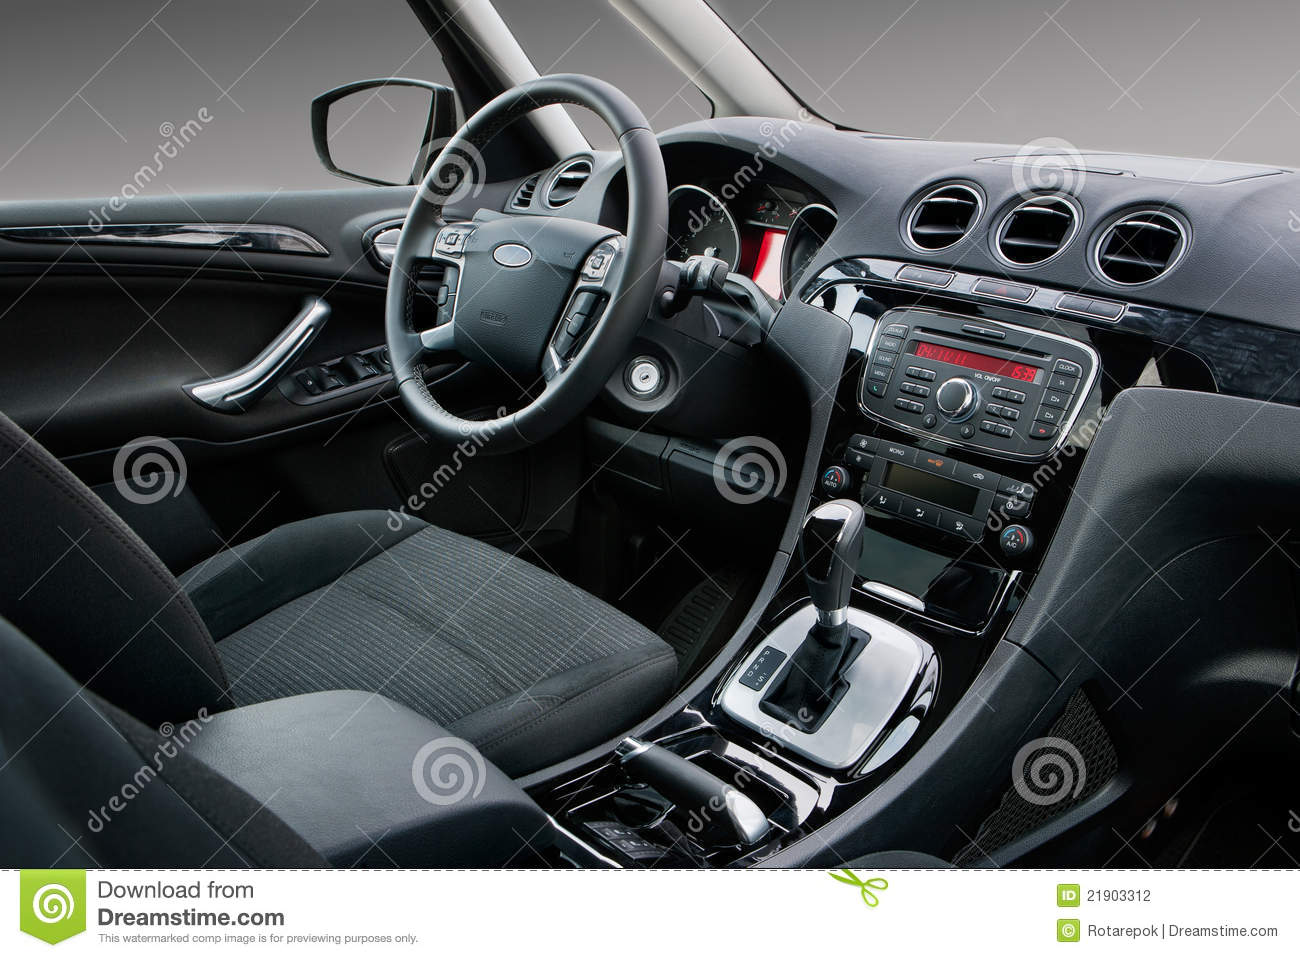 Modern car interior stock photo  Image of auto  shift   21903312 Modern car interior